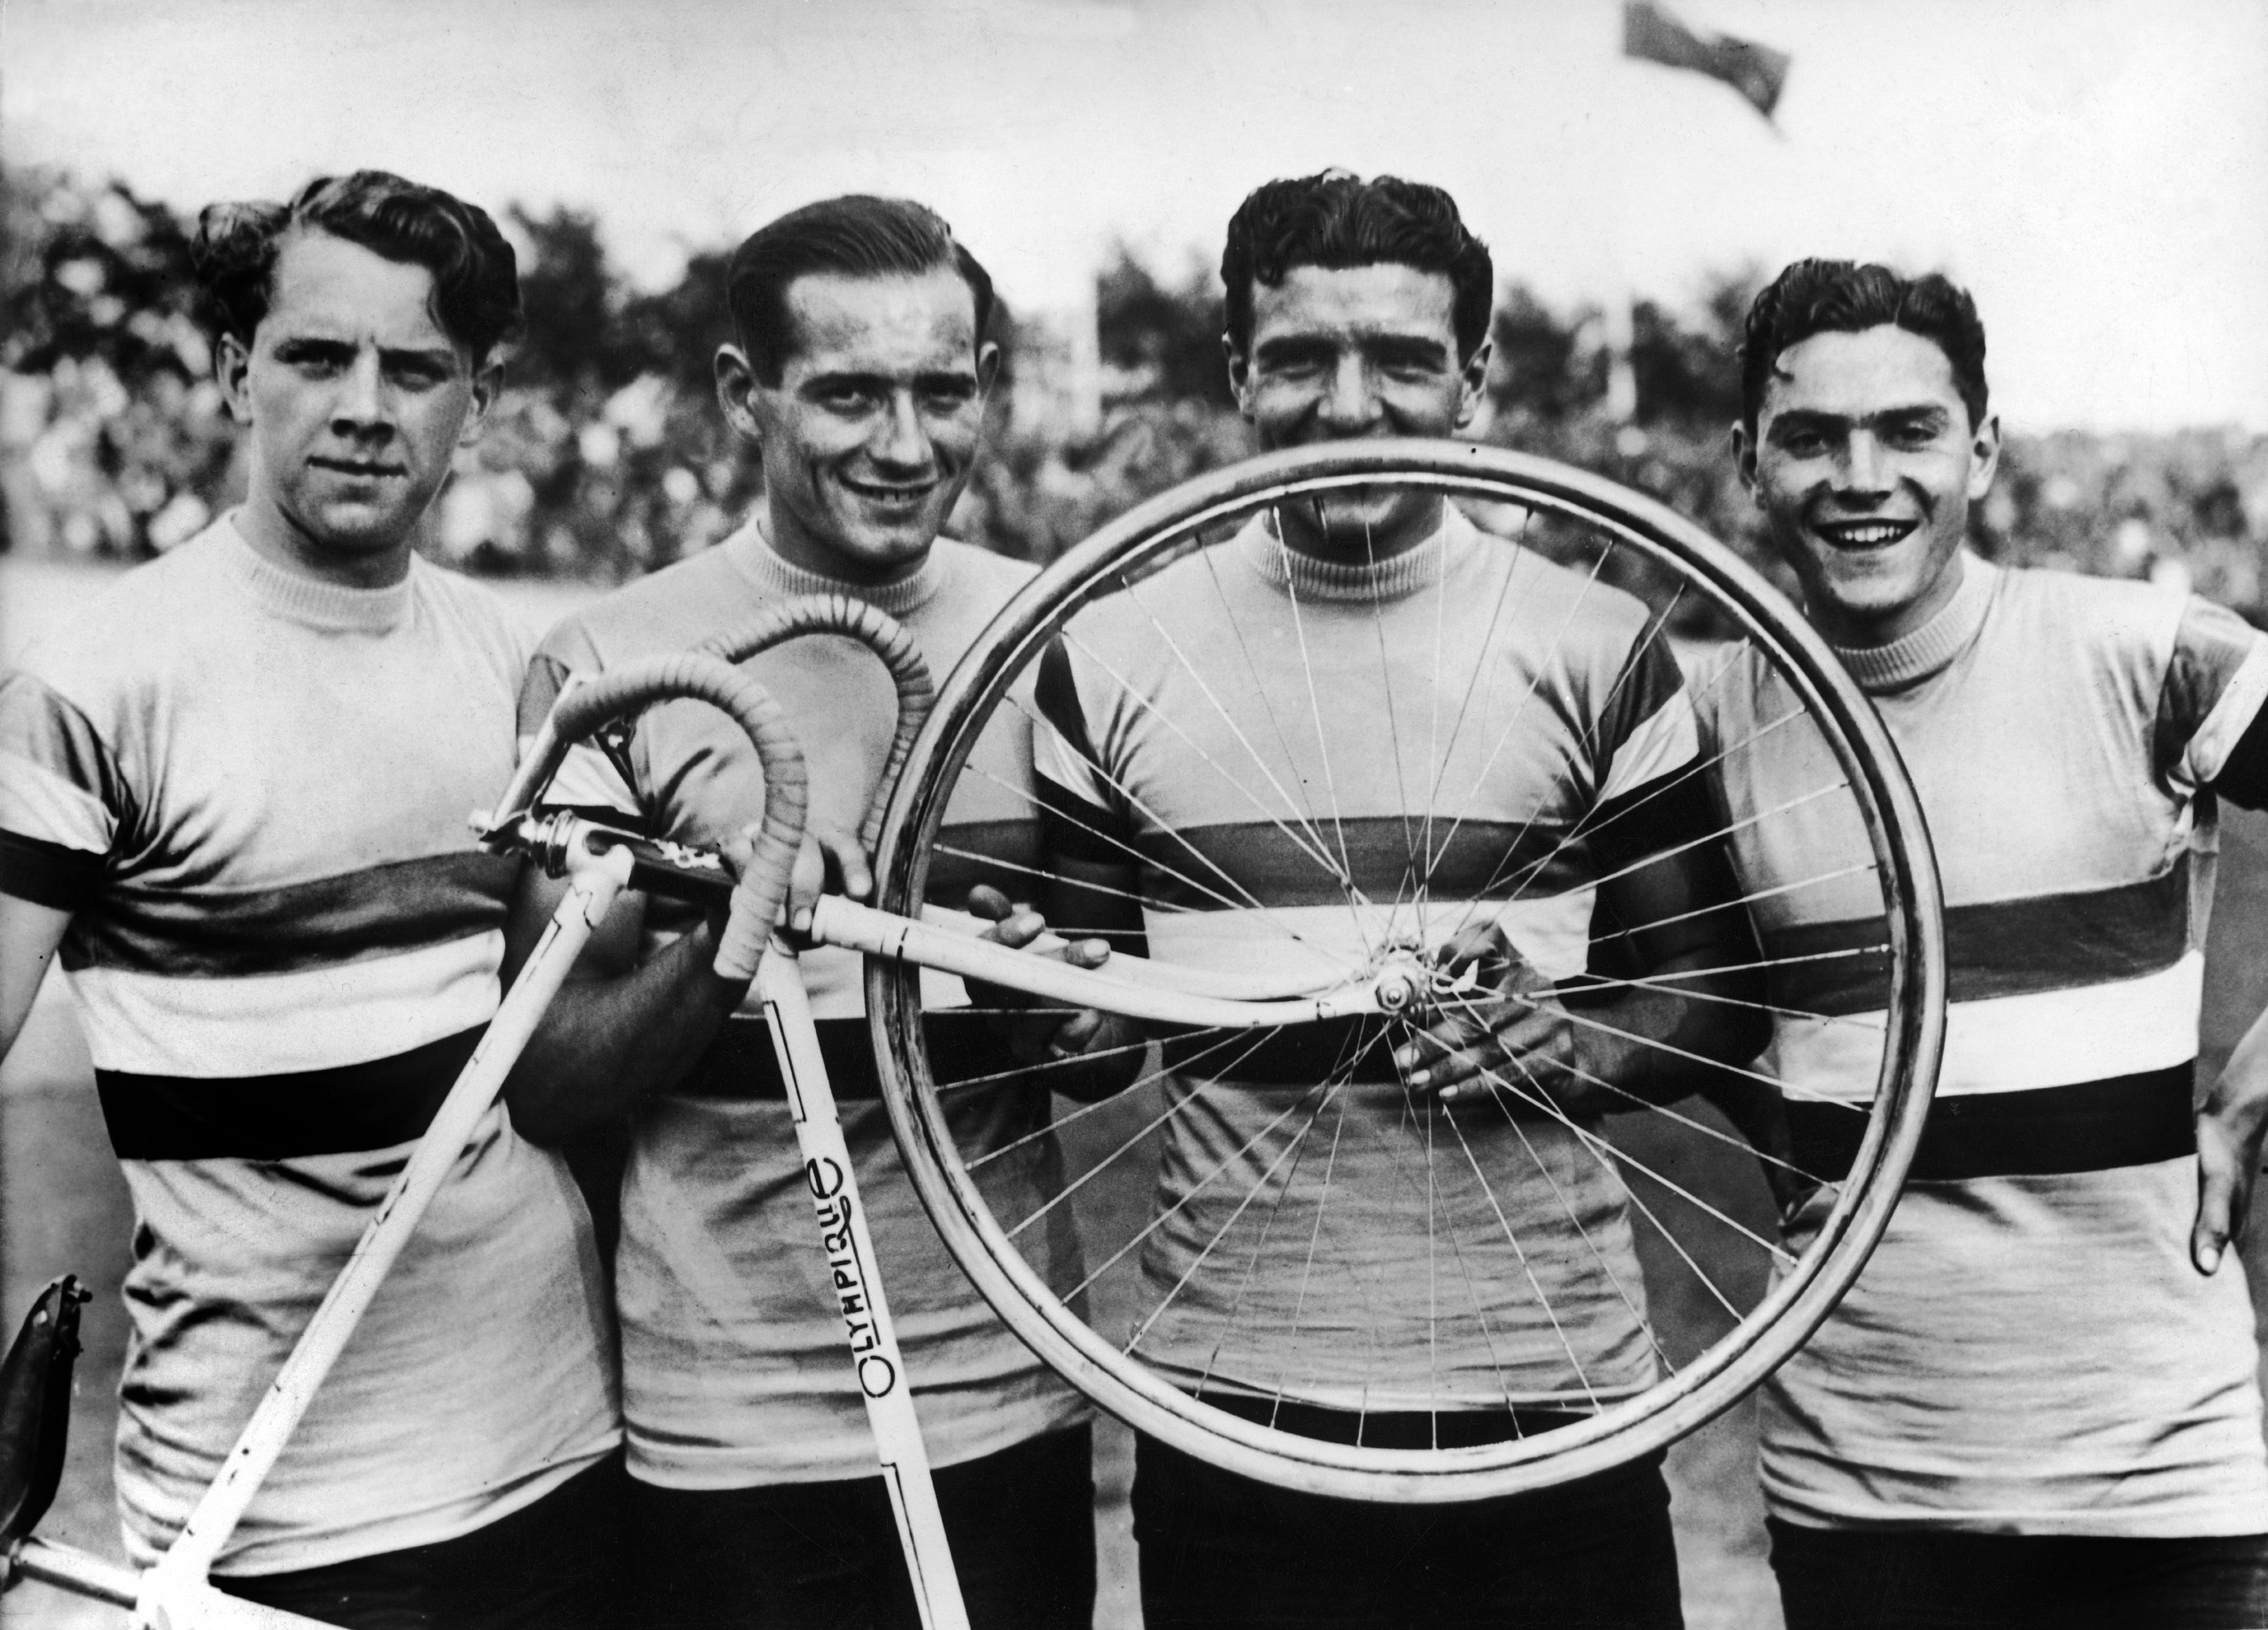 The Racing Cyclists Robert Charpentier, Guy Lapebie, Jean Goujon and Roger Le Nizerhy just after having won at the Olympic Games in Berlin in August 1936.